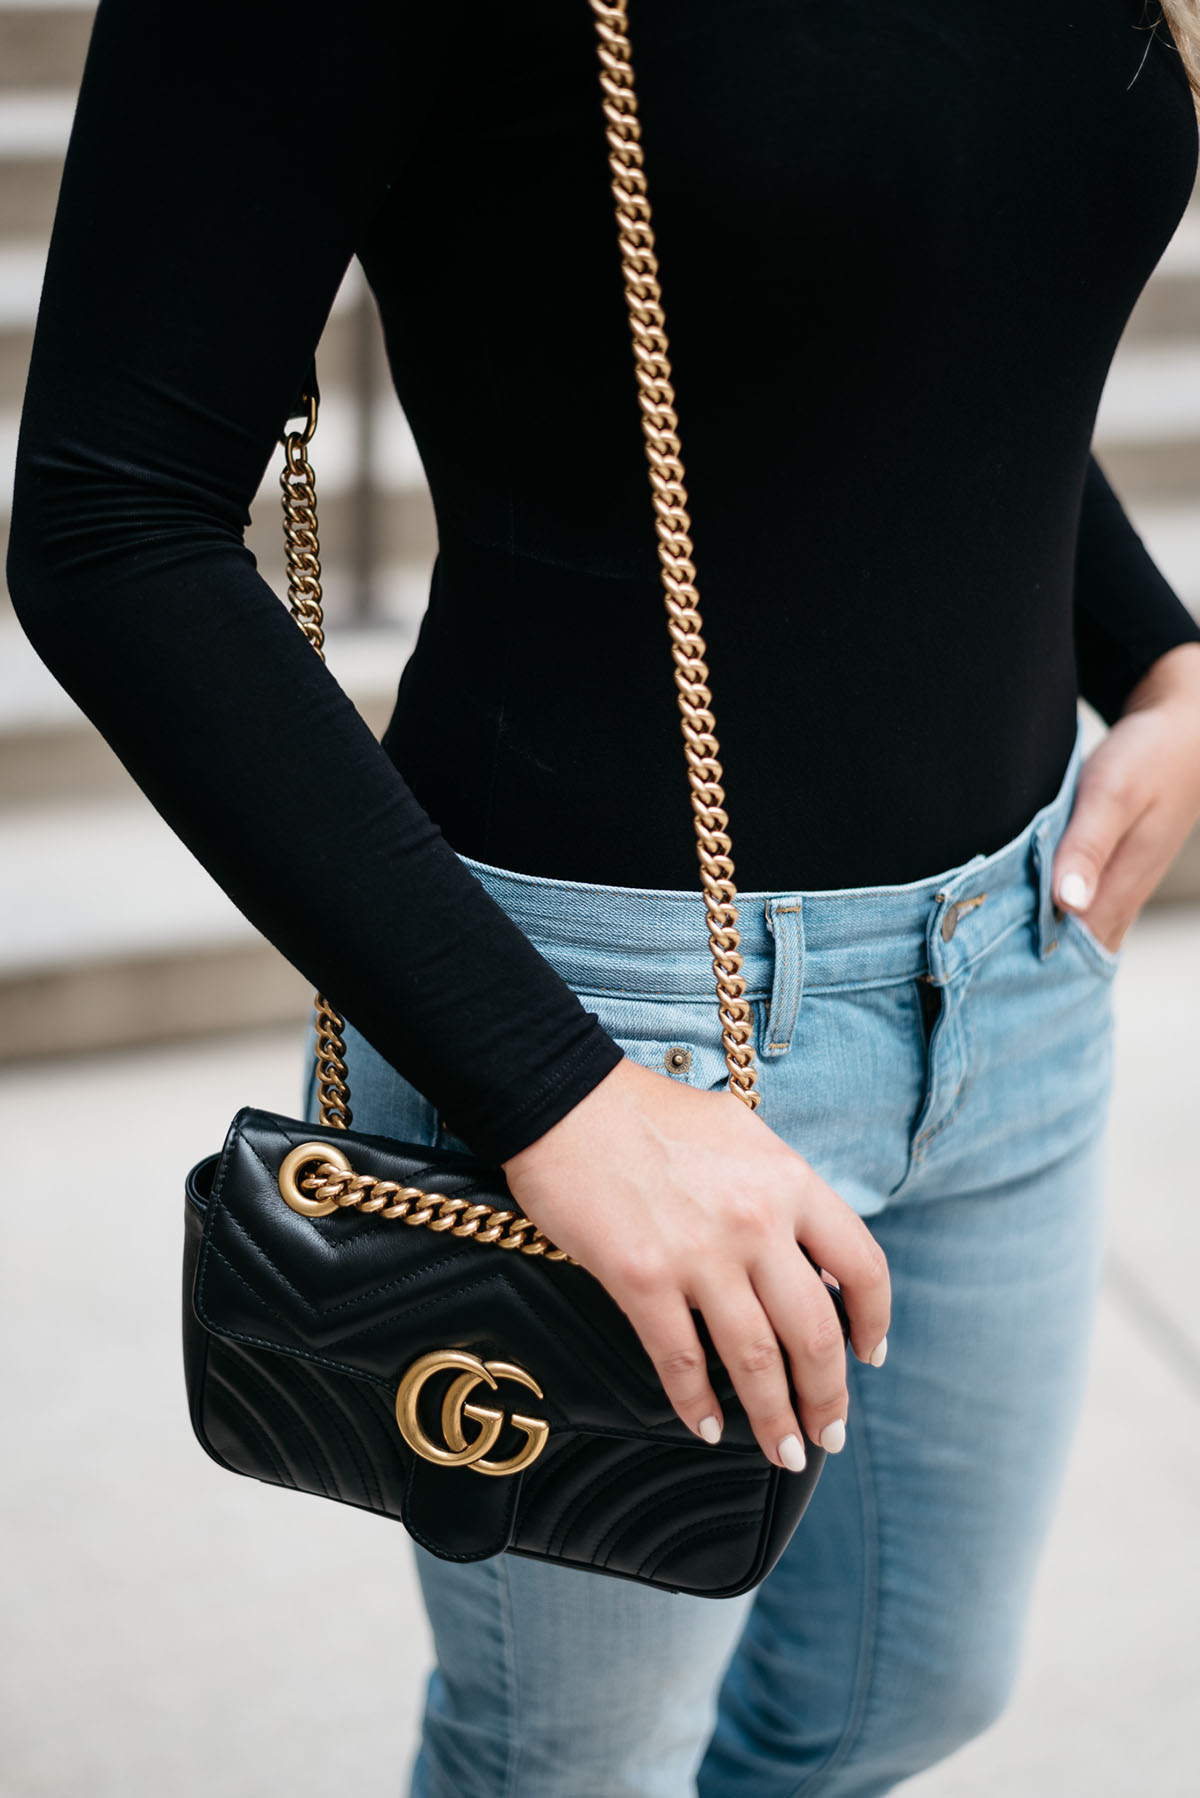 Bows & Sequins accessorizing a black bodysuit with a leather Gucci gold chain bag.